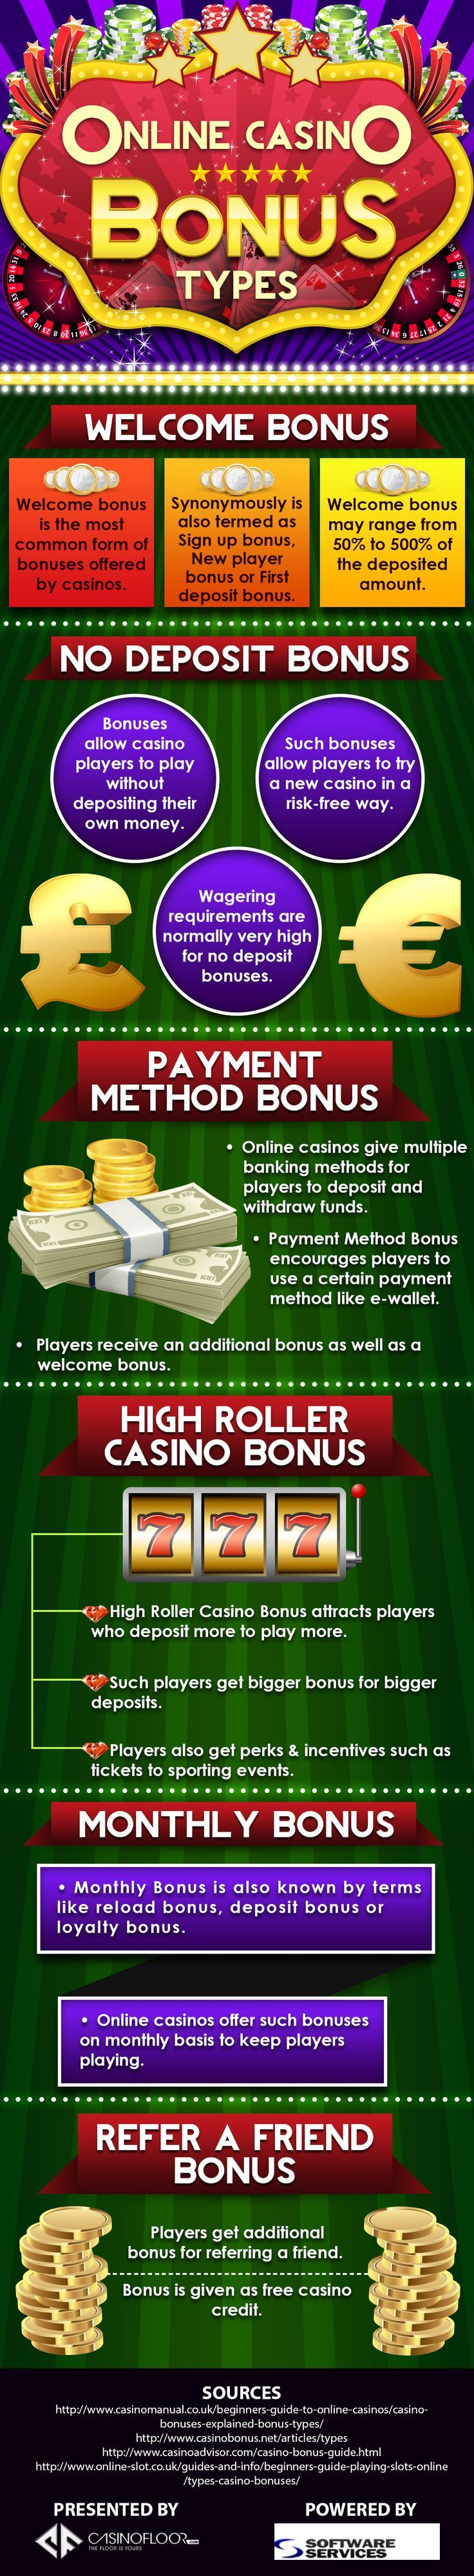 Fidelca casino roulette conference call slot machines